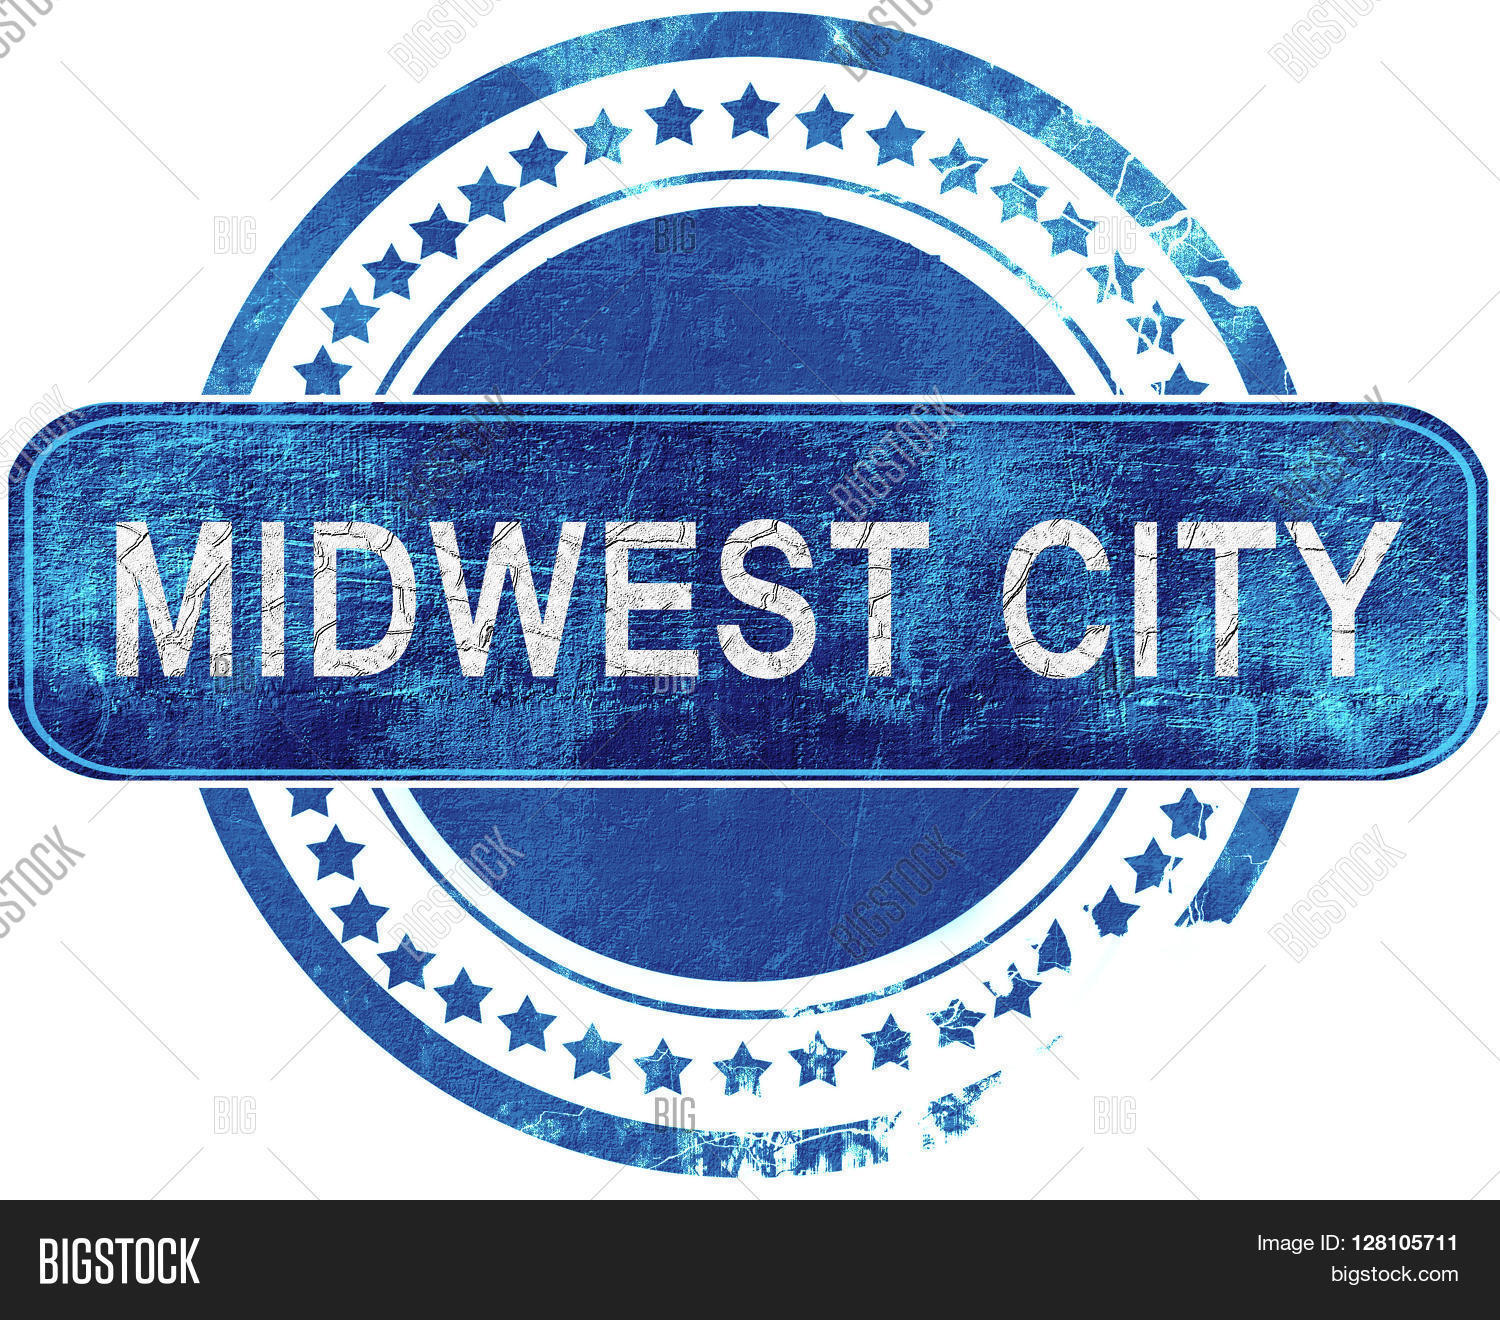 midwest city grunge blue stamp. Isolated on white. Stock Photo.